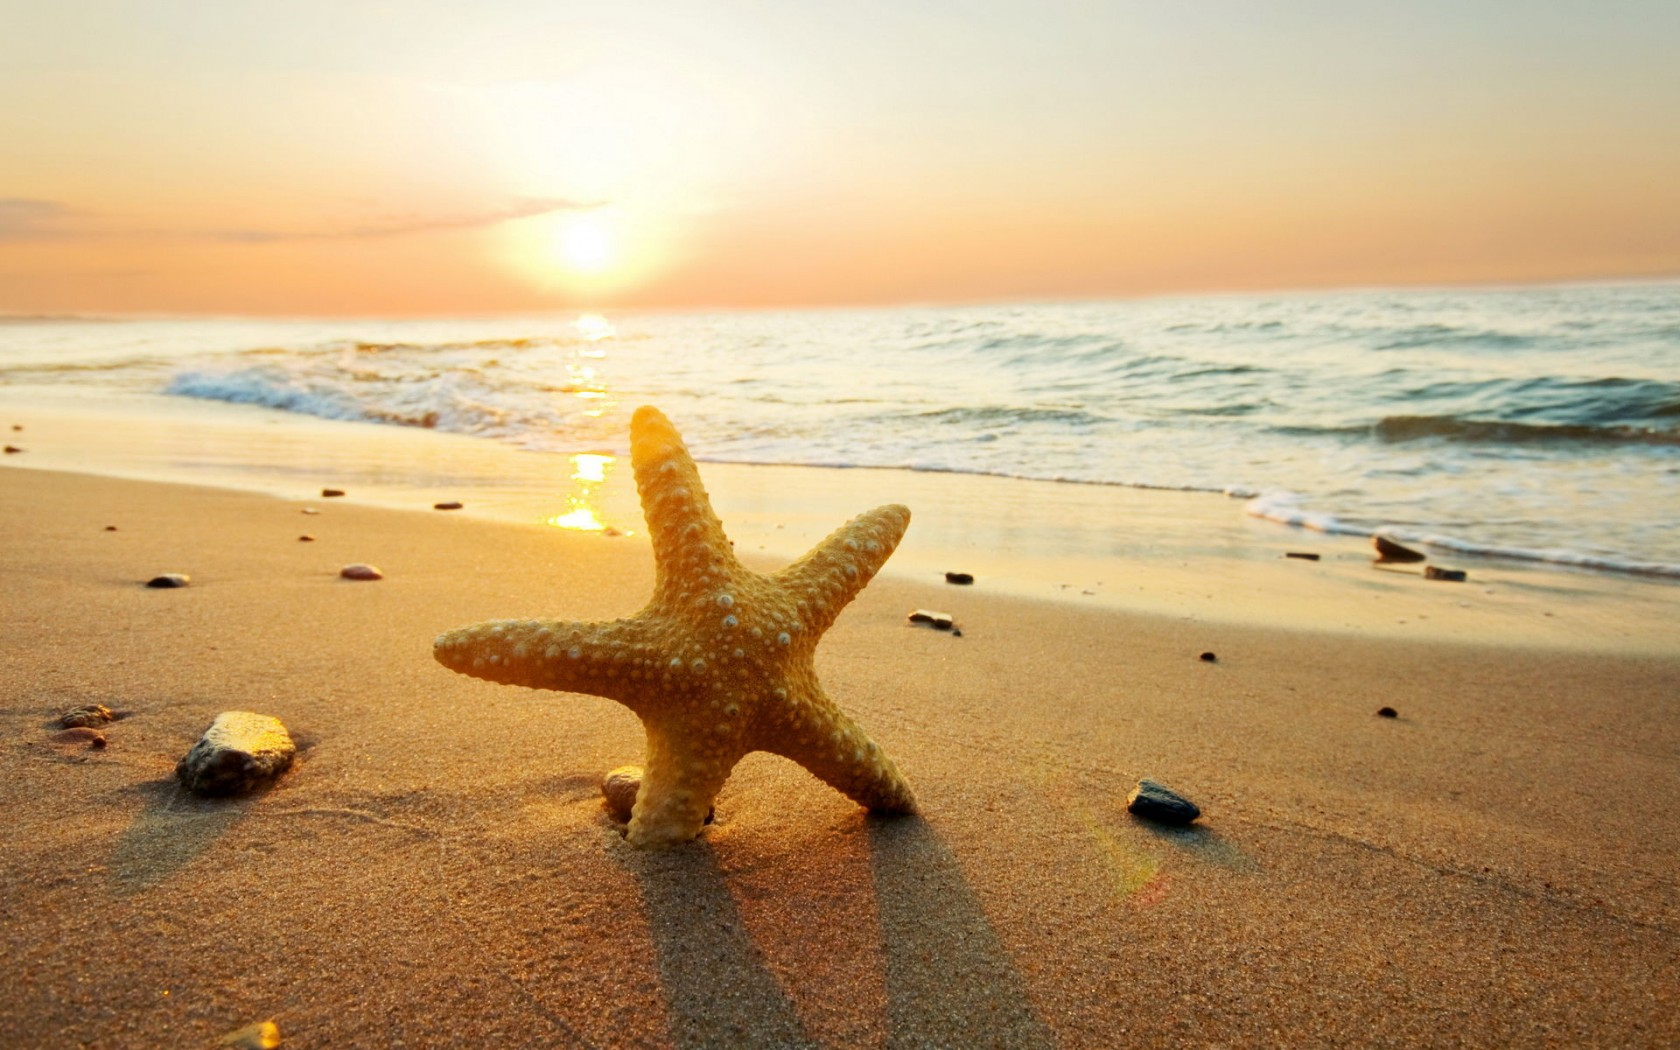 Make a Wish on a Starfish